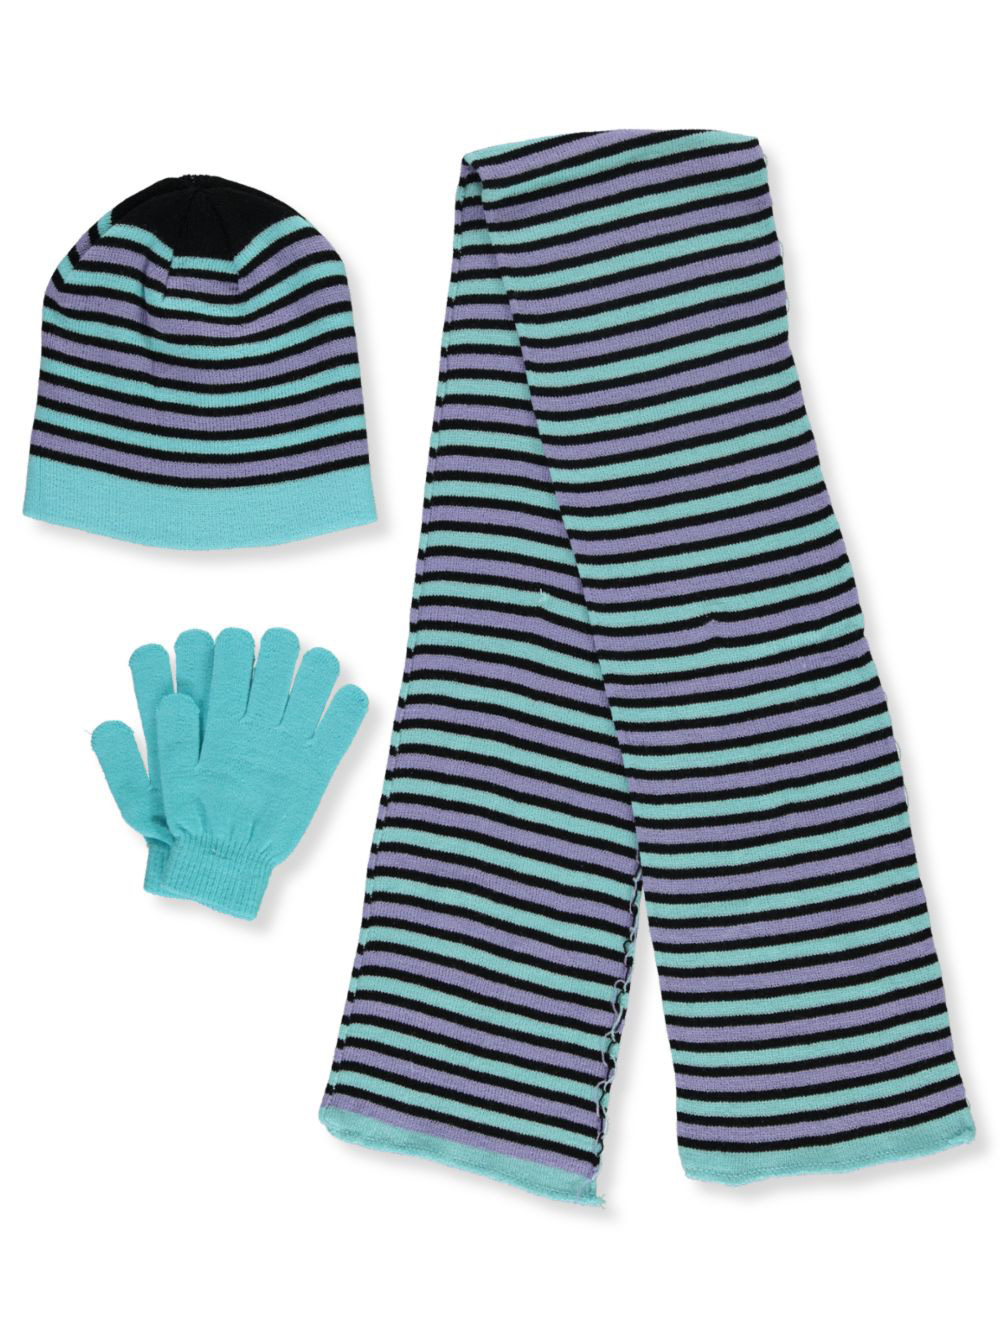 Border Stripe 3-Piece Winter Accessories Set